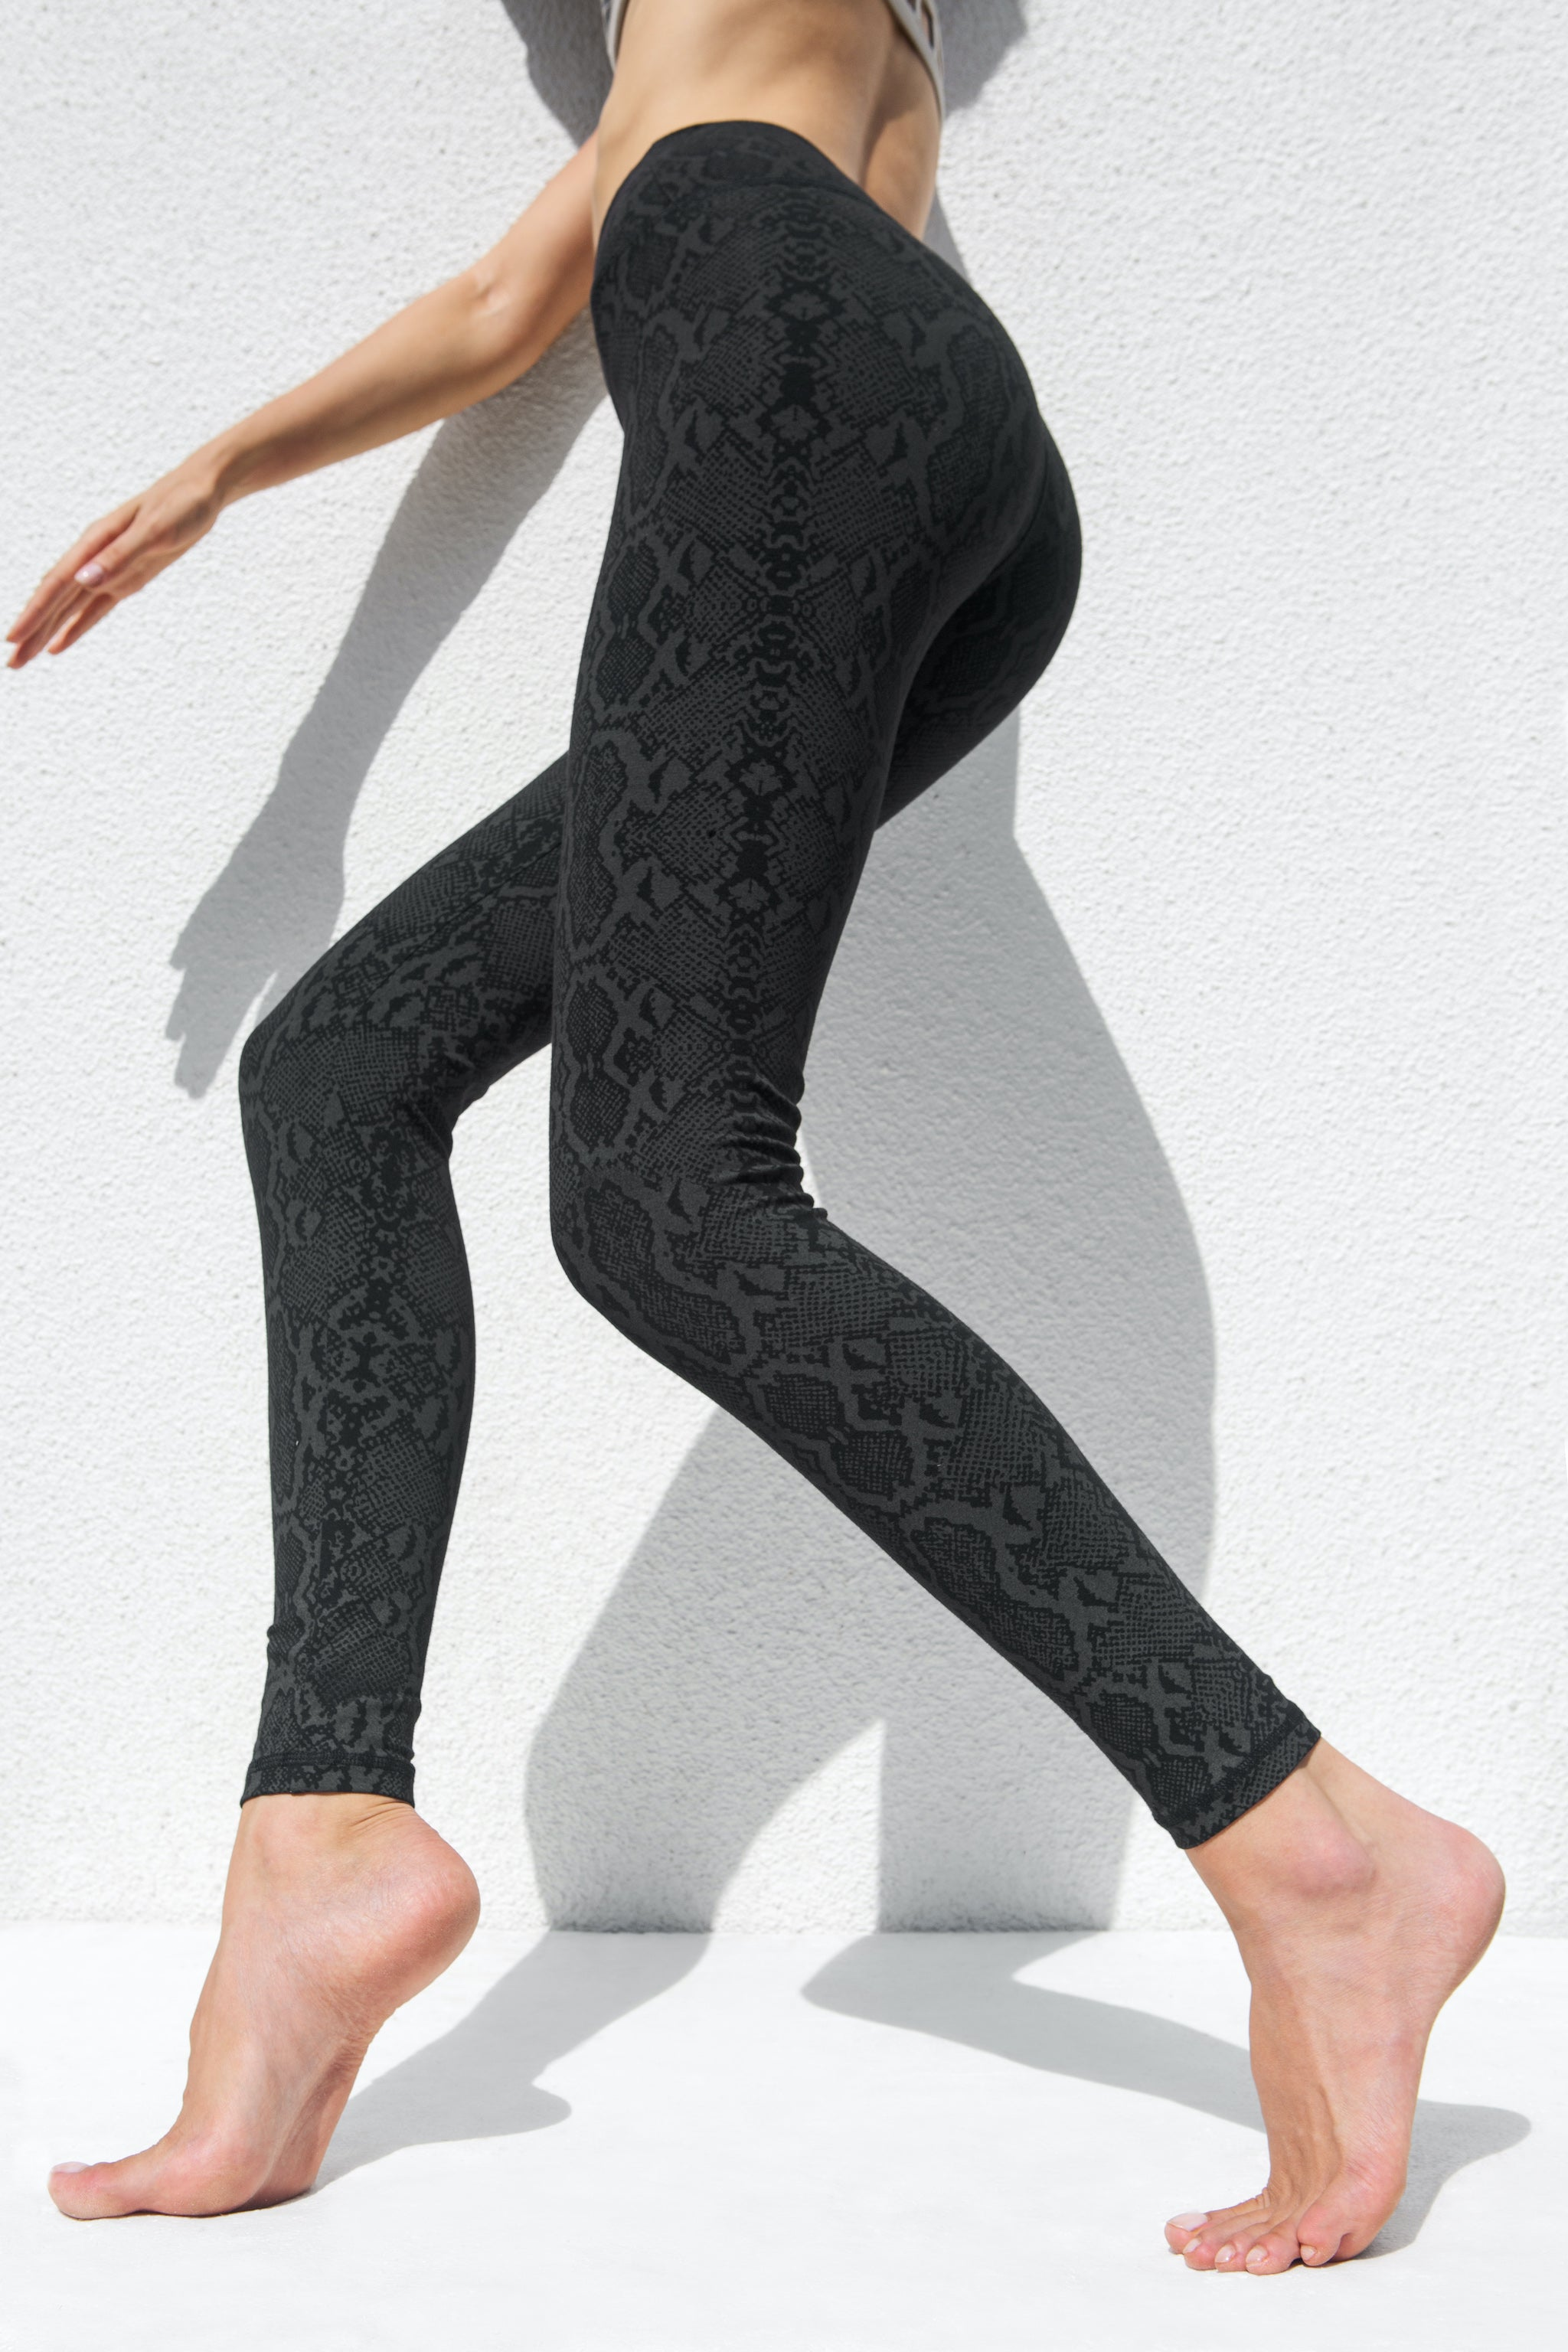 Super High Waist Leggings Tights - Black Snake